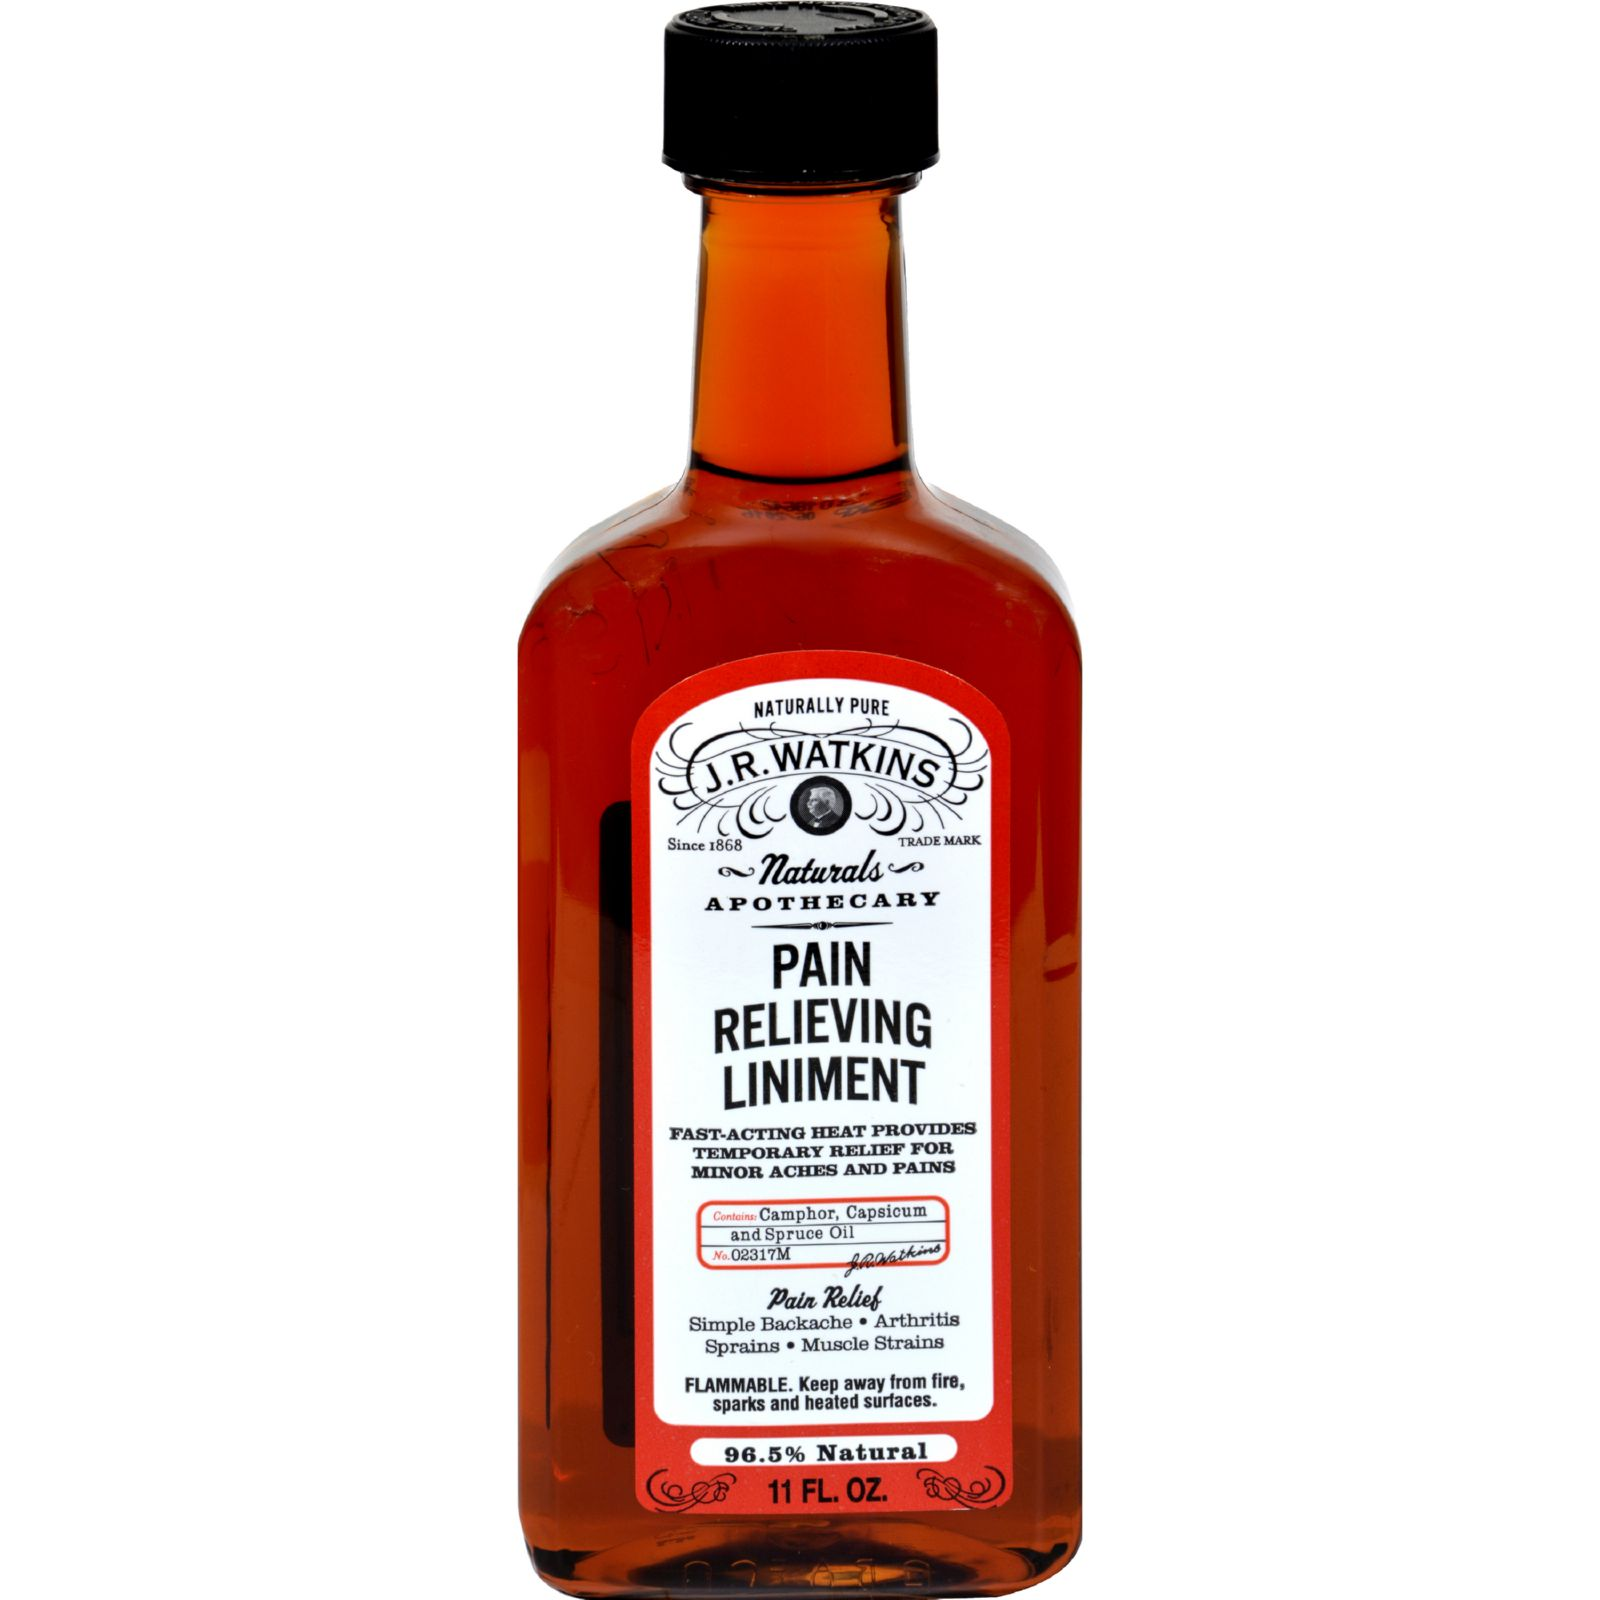 J.R. Watkins Natural Pain Relieving Liniment - 11 oz - (Pack of 2)